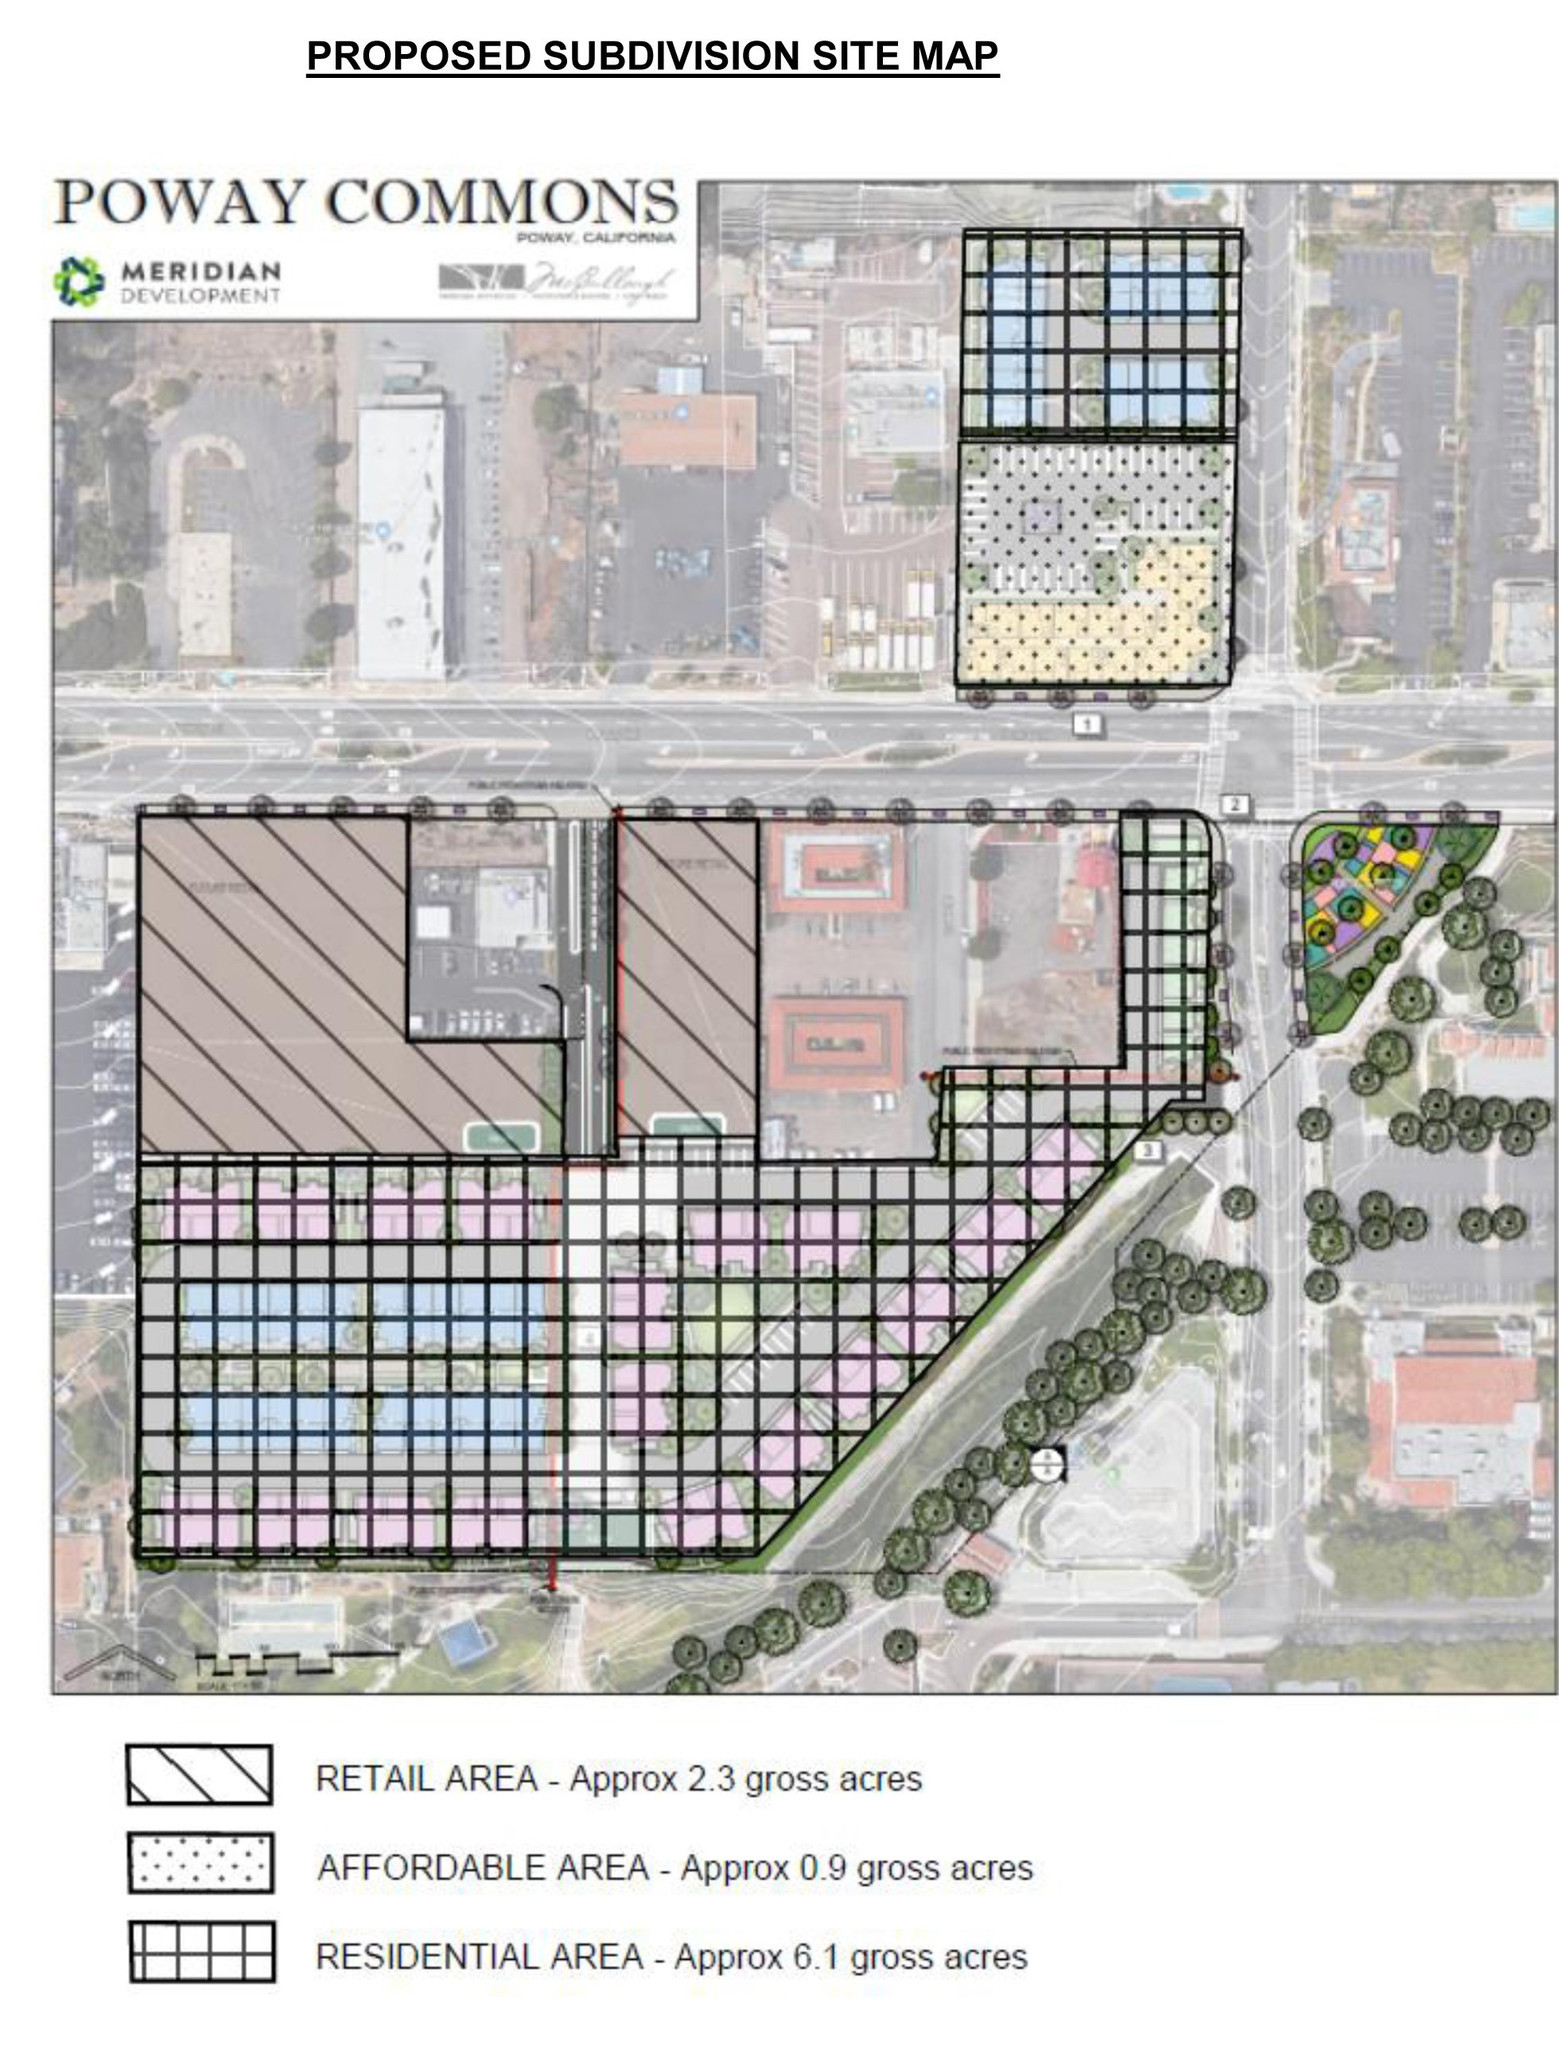 Map showing lots involved in the proposed Poway Commons development.